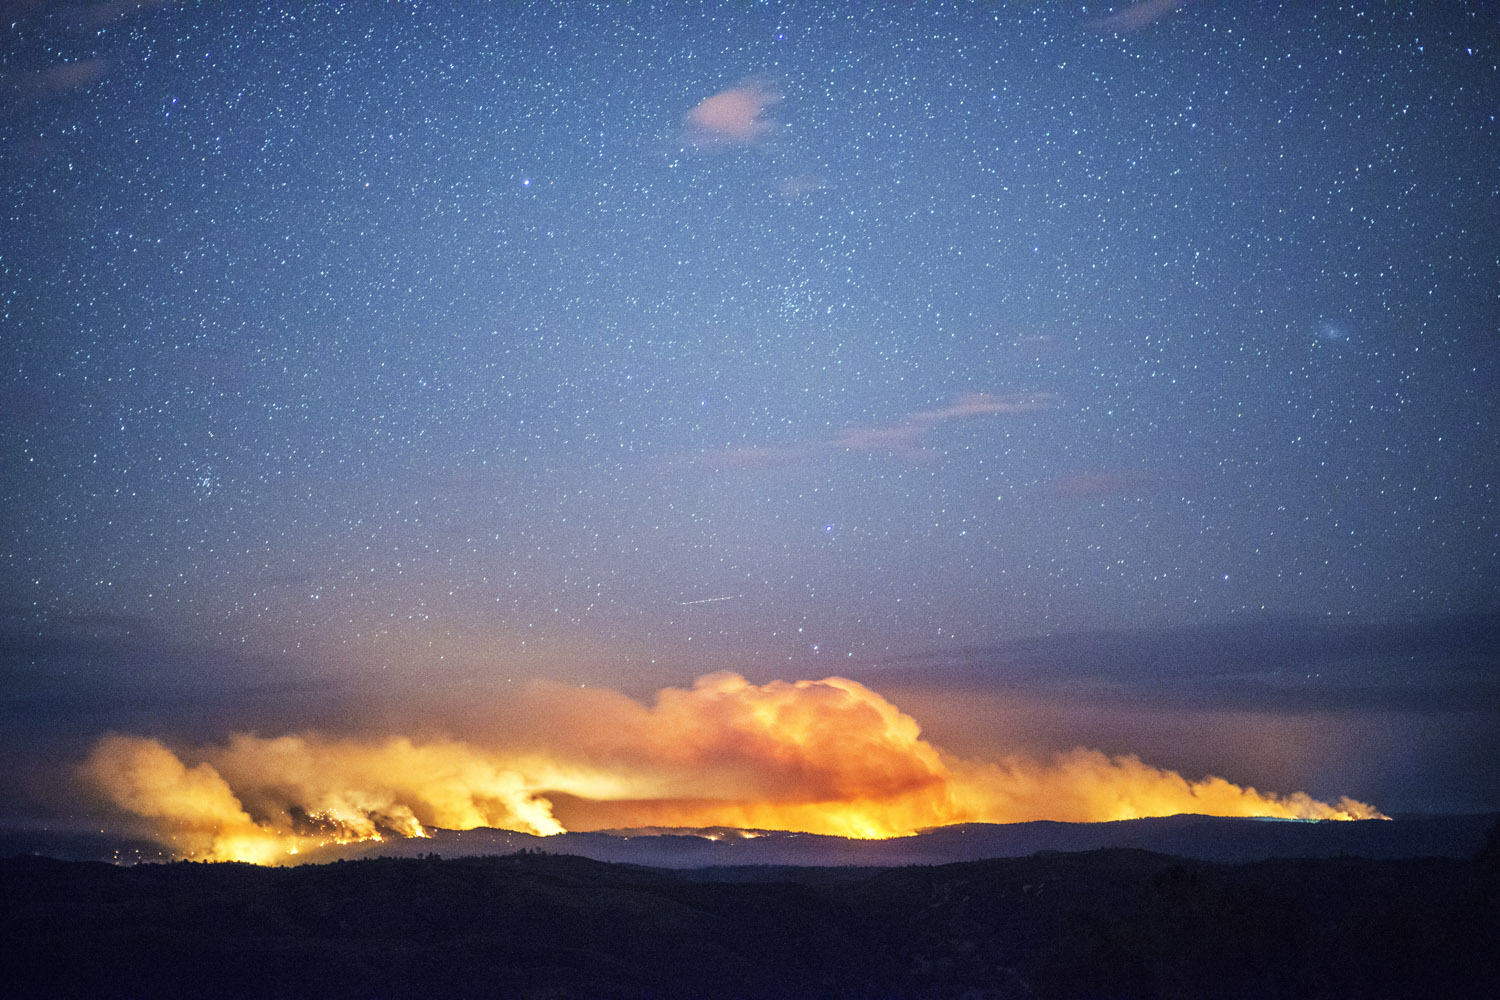 The Rim Fire burns through Yosemite National park and the Stanislaus National Forest in late August. Multiple heads to the fire can be seen in this long exposure image.